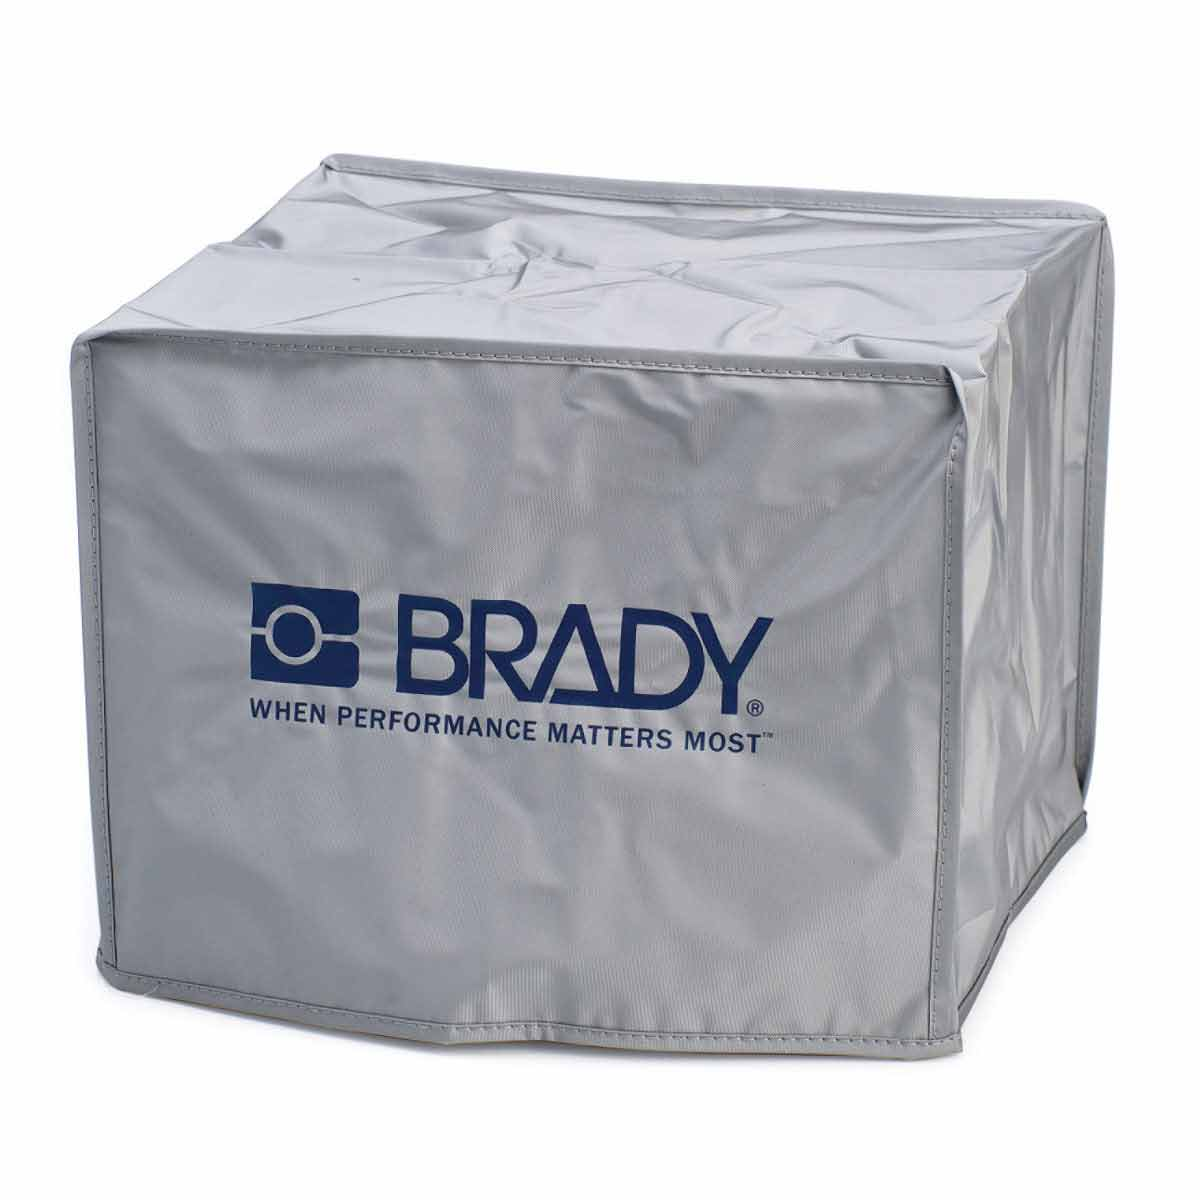 Brady® B31-DC Dust Cover, For Use With Brady® BBP®31 Sign and Label Printer